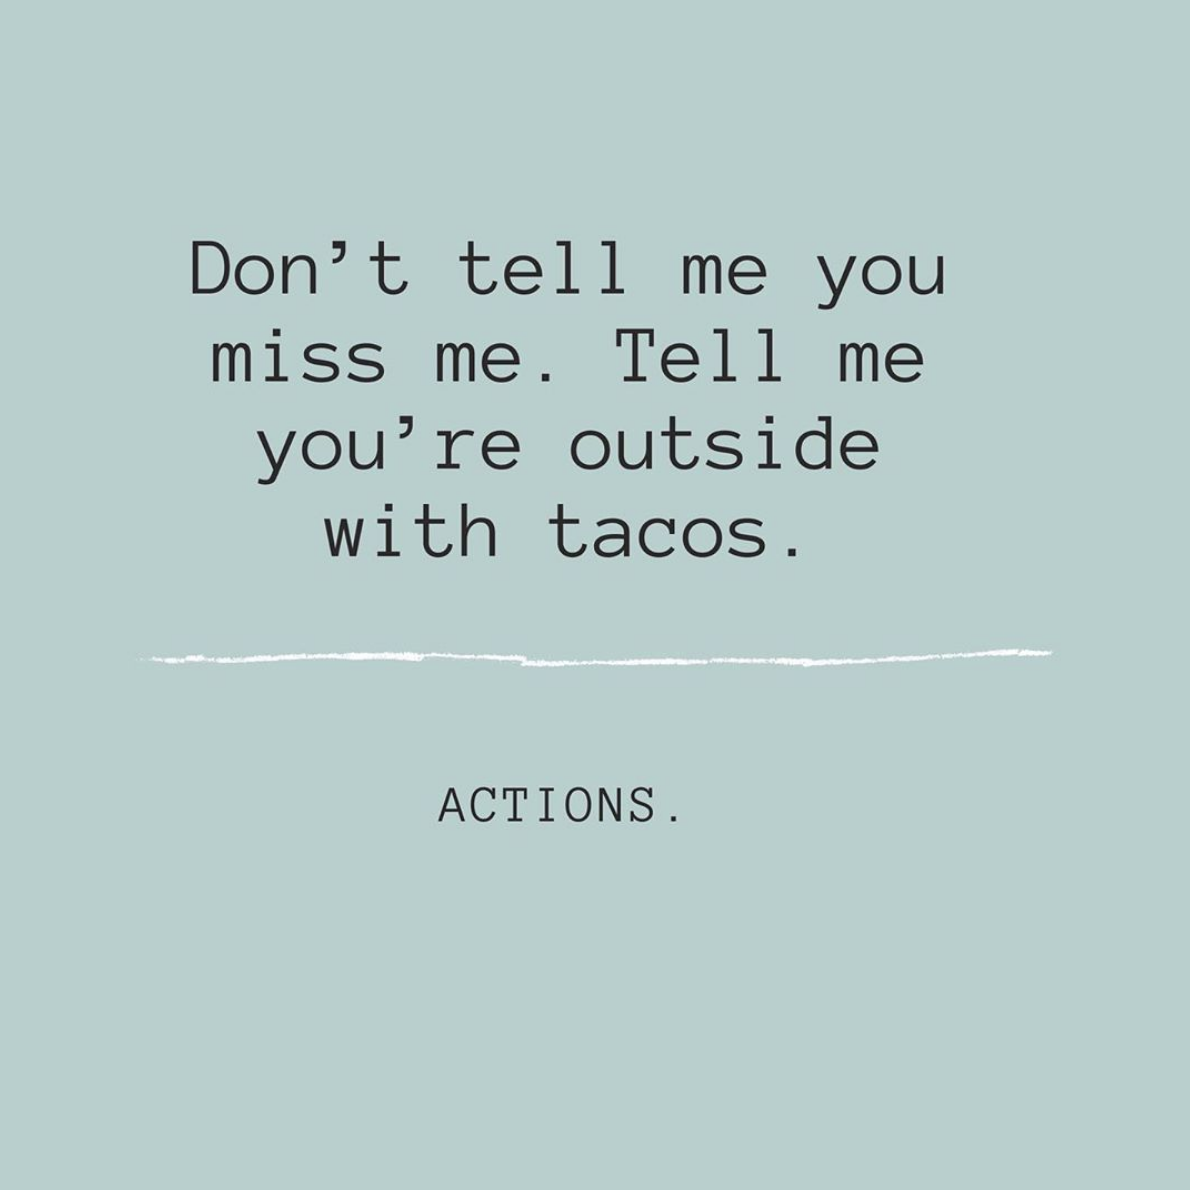 WE LOVE TACOS    Hilary's favorite taco is Baja grilled fish smothered in guacamole and salsa! Jessica's favorite taco is carnitas, extra guac please!